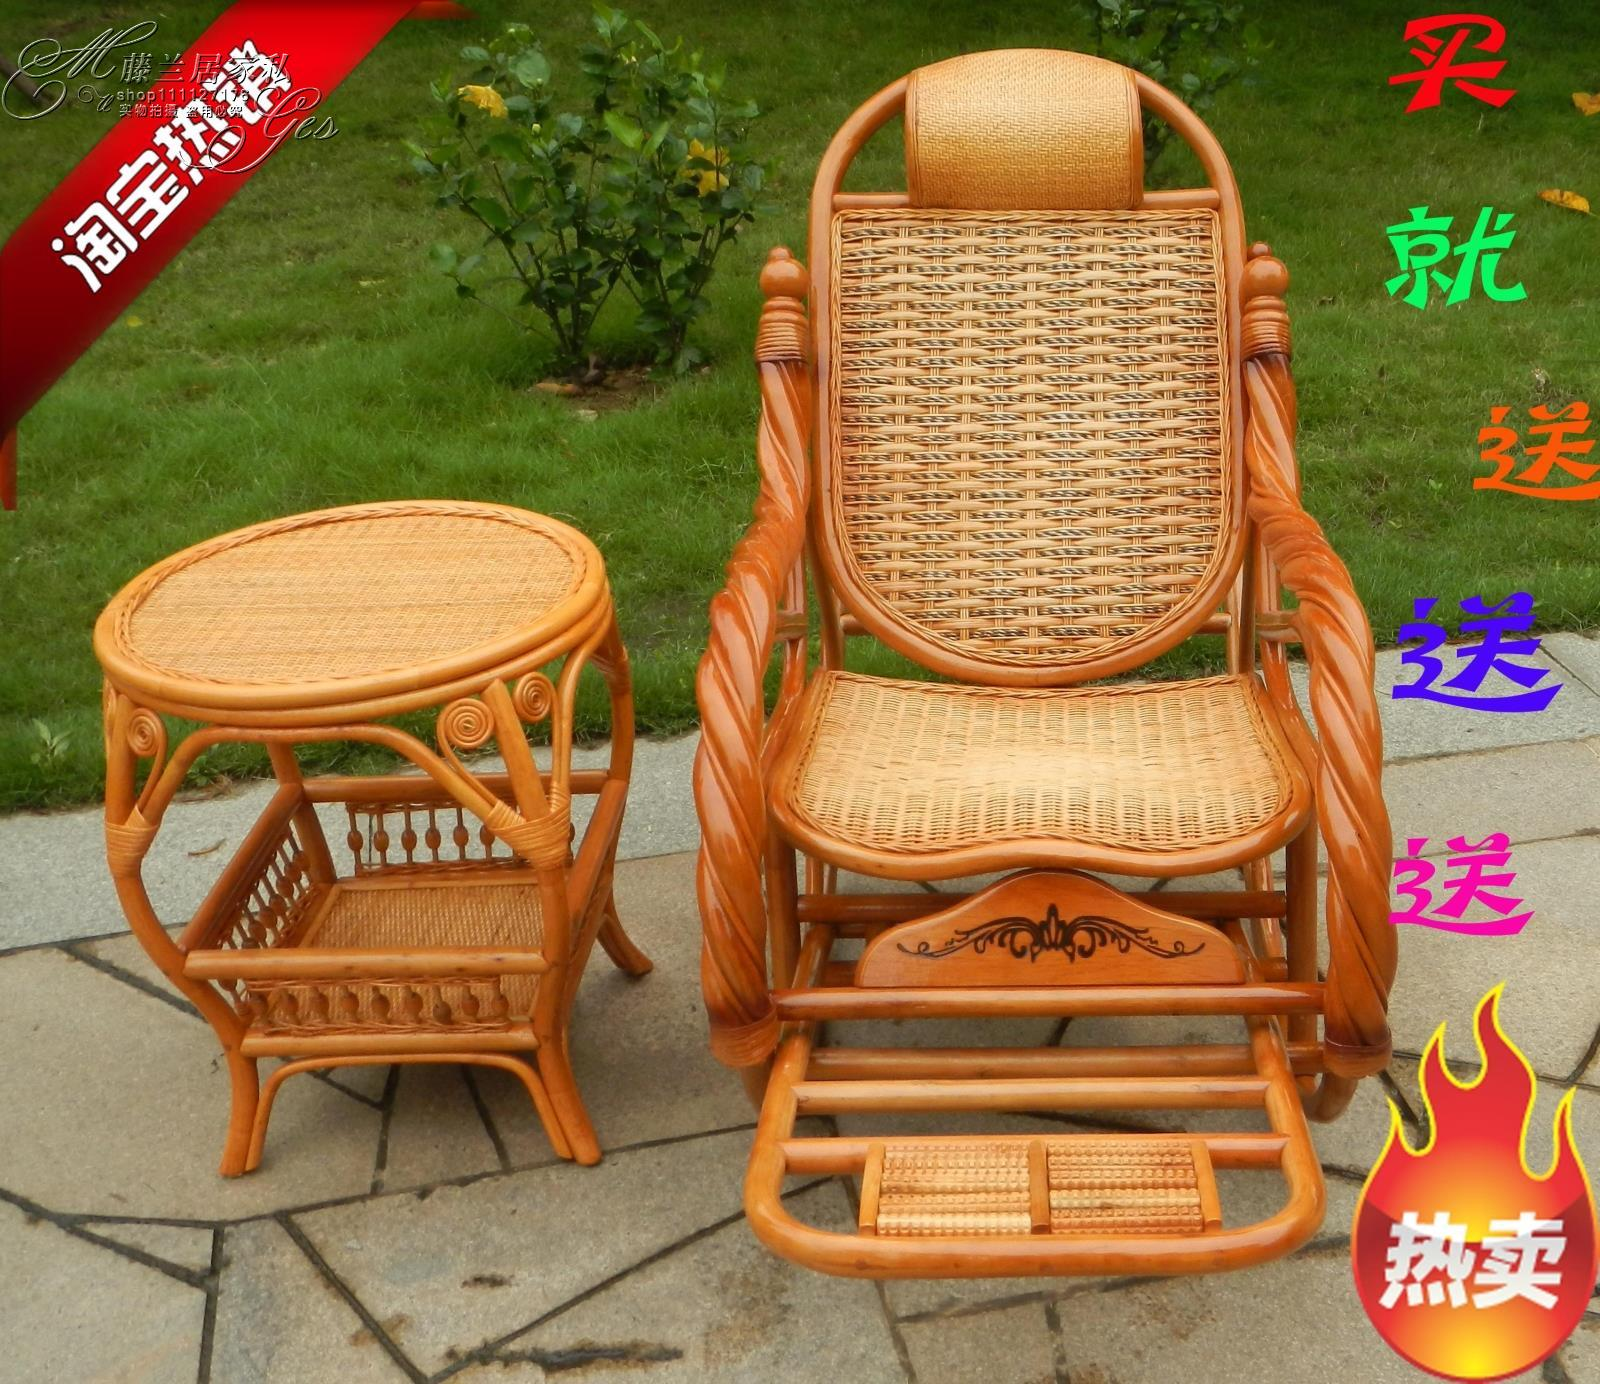 Factory Outlet And Twisted Cane Rocking Chair Easy Chair Cane Rocking Chairs  For The Elderly In Indonesia Balcony Chair Rocking Chair